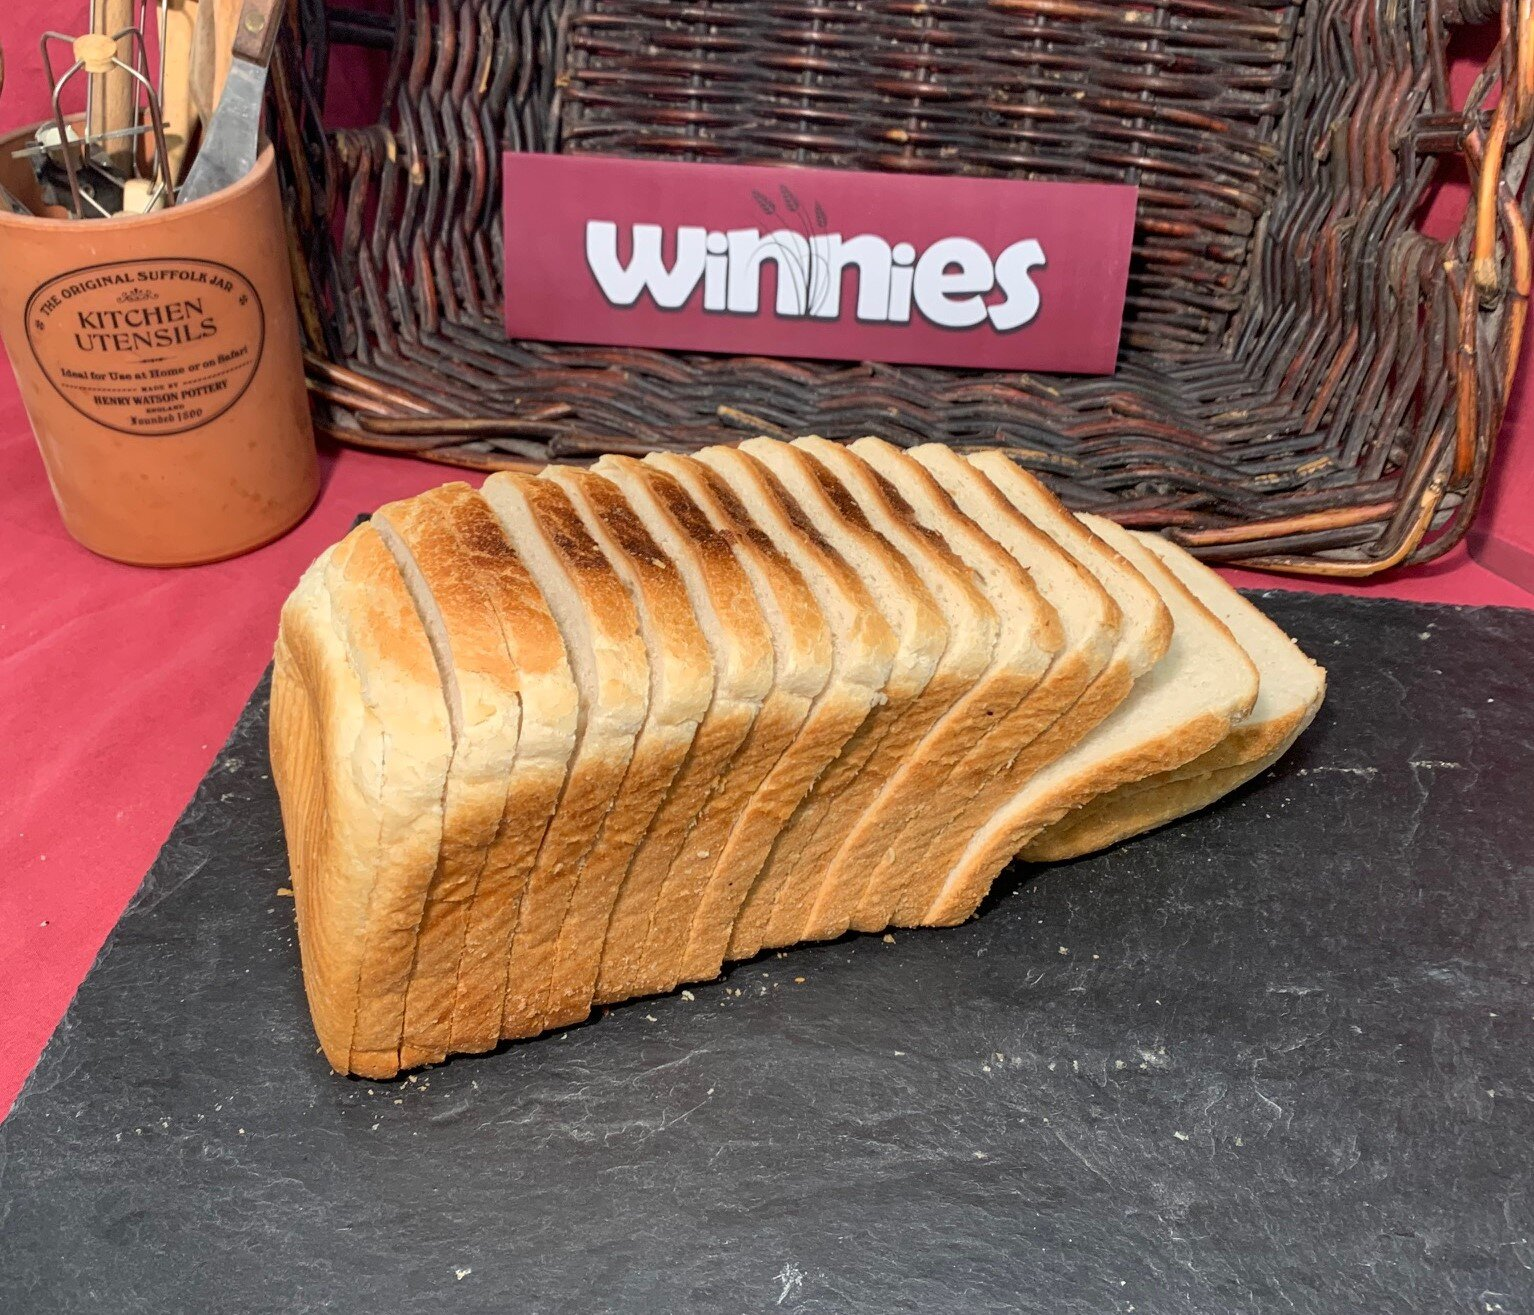 LARGE WHITE SANDWICH SLICED